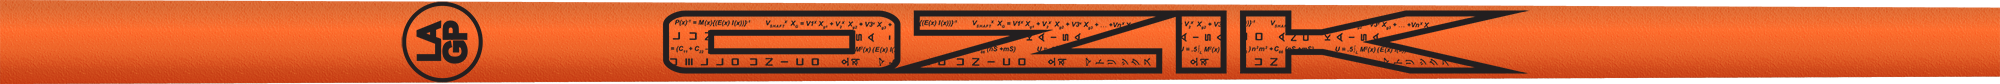 Ozik White Tie: Neon Orange Black Textured - Wood 50 R